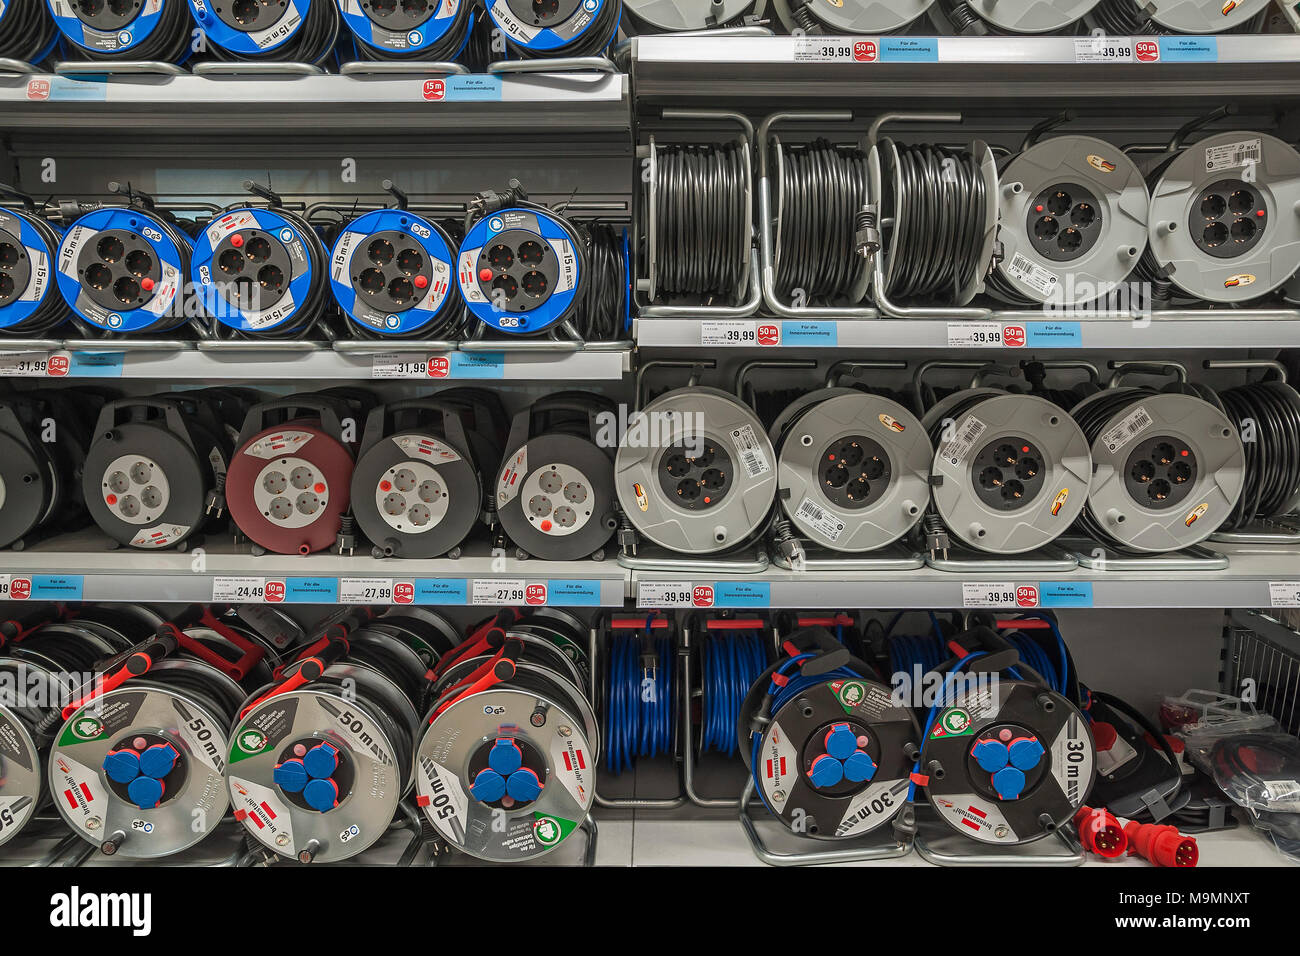 Electrical equipment, Shelf with cable drums, hardware store, interior, Bavaria, Germany - Stock Image